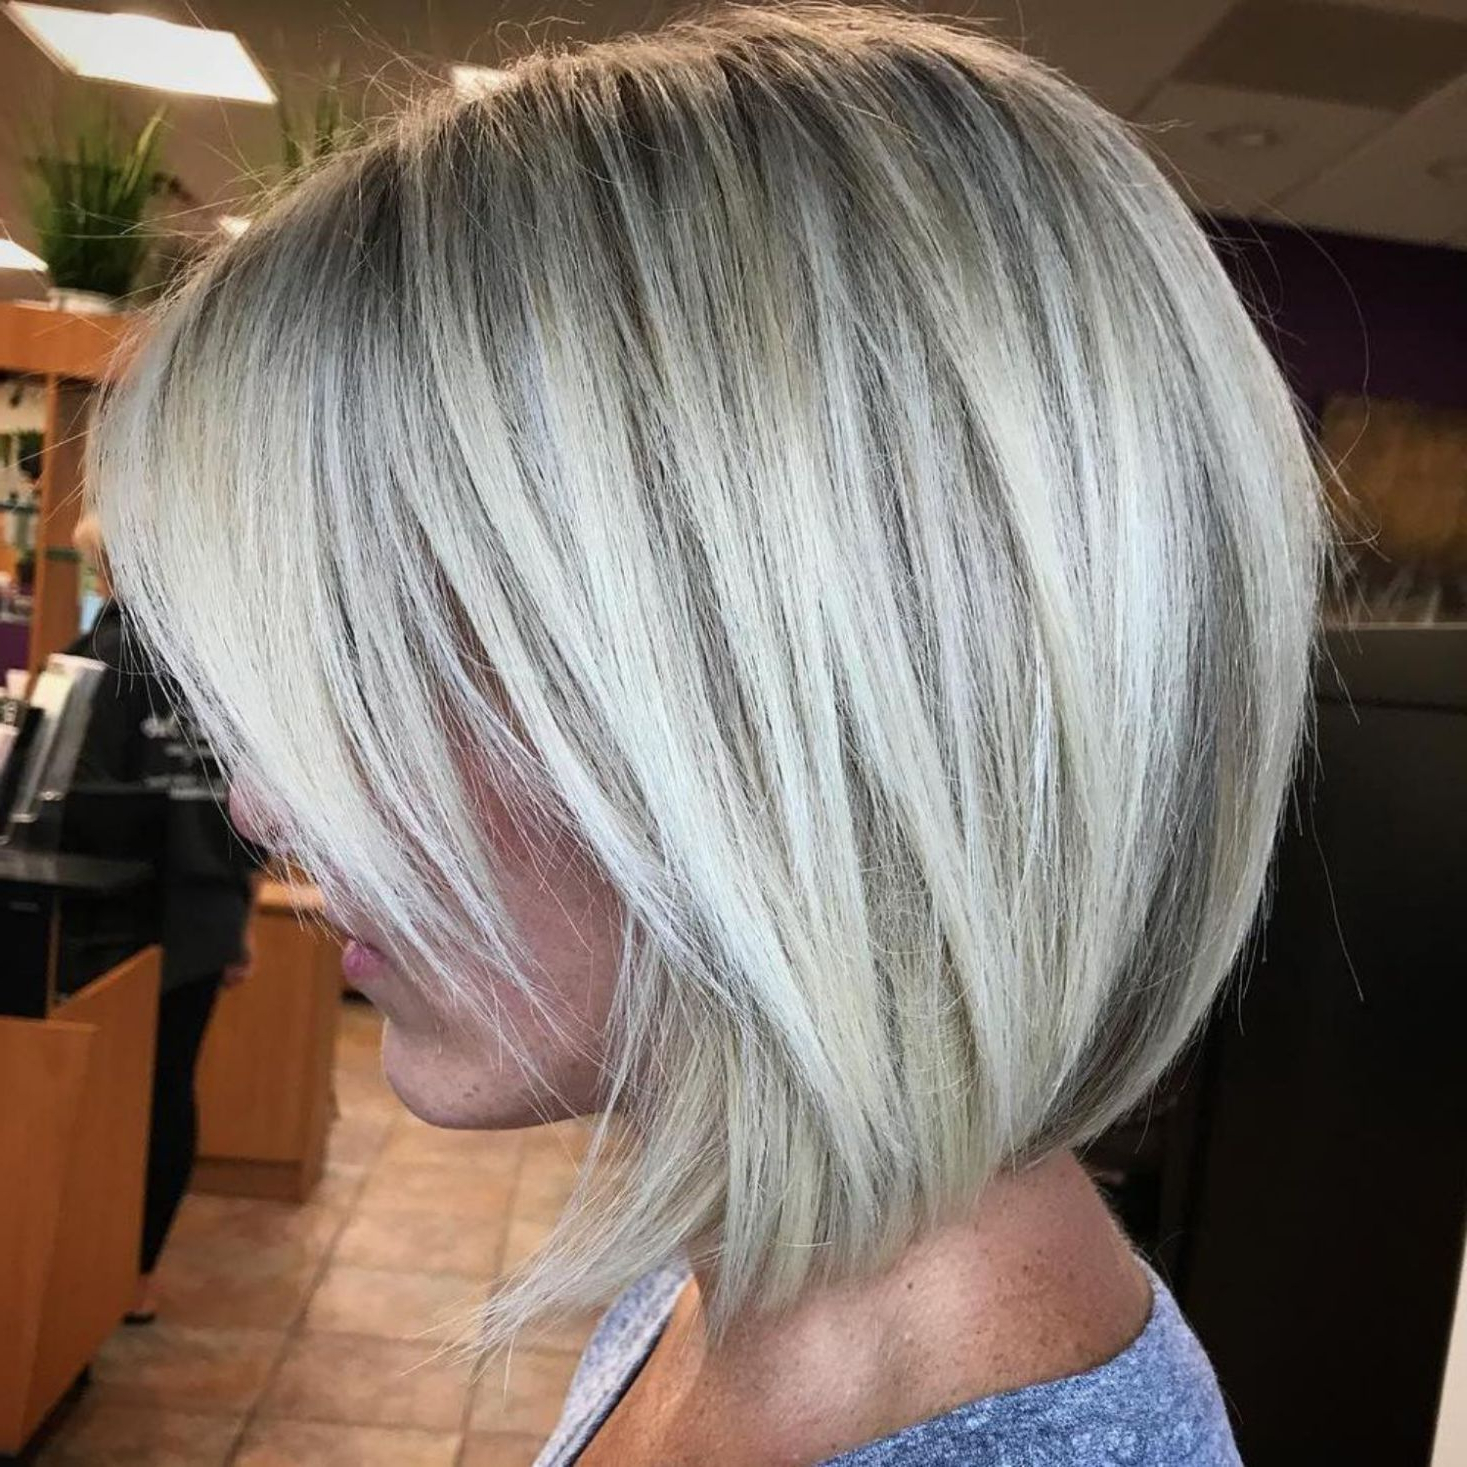 60 Beautiful And Convenient Medium Bob Hairstyles In 2019 With Regard To Well Known Razored Gray Bob Hairstyles With Bangs (View 2 of 20)